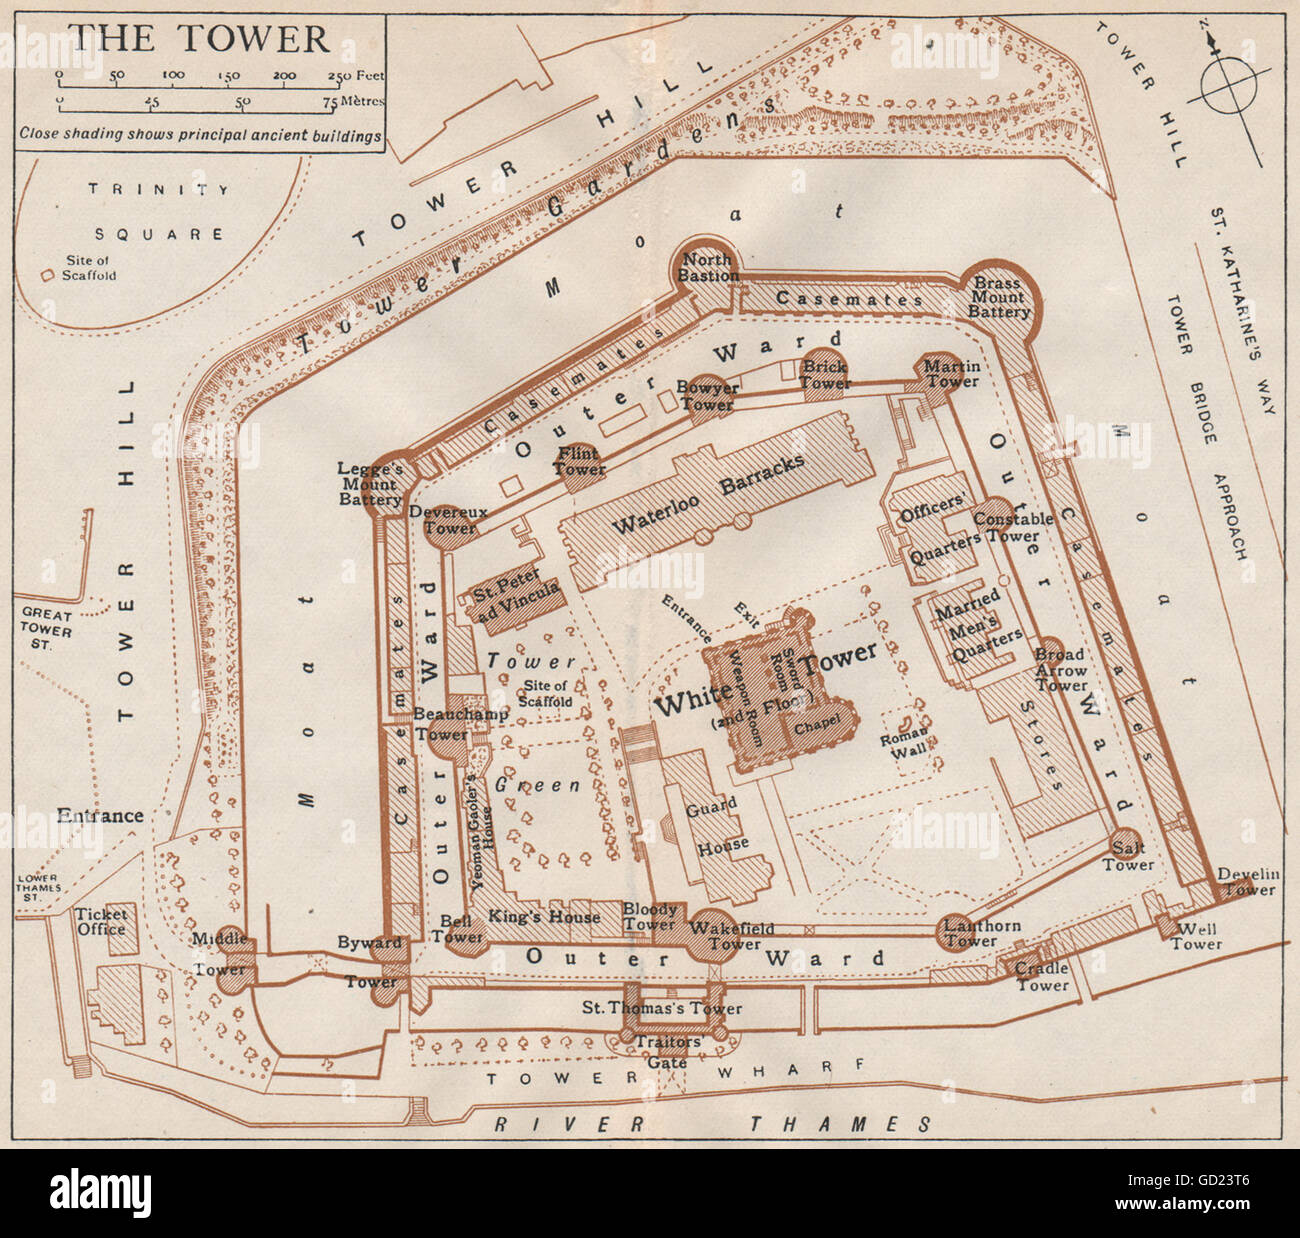 TOWER OF LONDON. Vintage map plan, 1922 Stock Photo: 111299670 - Alamy